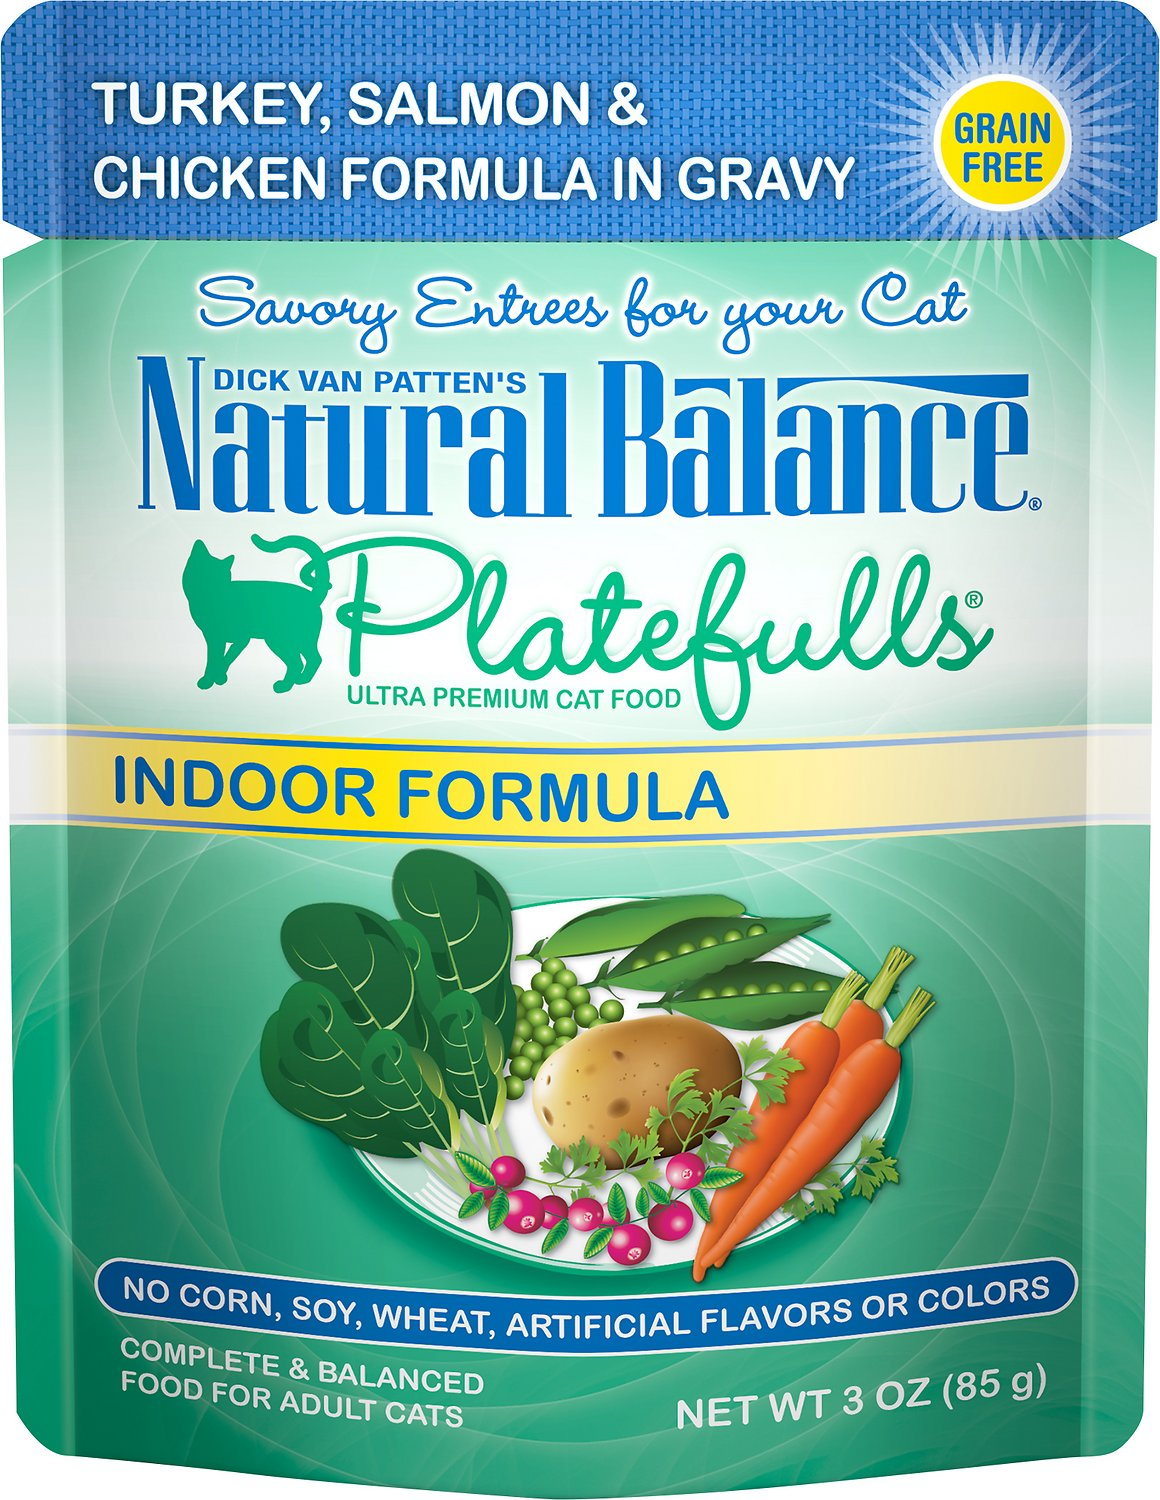 Natural Balance Platefulls Indoor Formula Turkey, Salmon & Chicken in Gravy Grain-Free Cat Food Pouches, 3-oz pouch